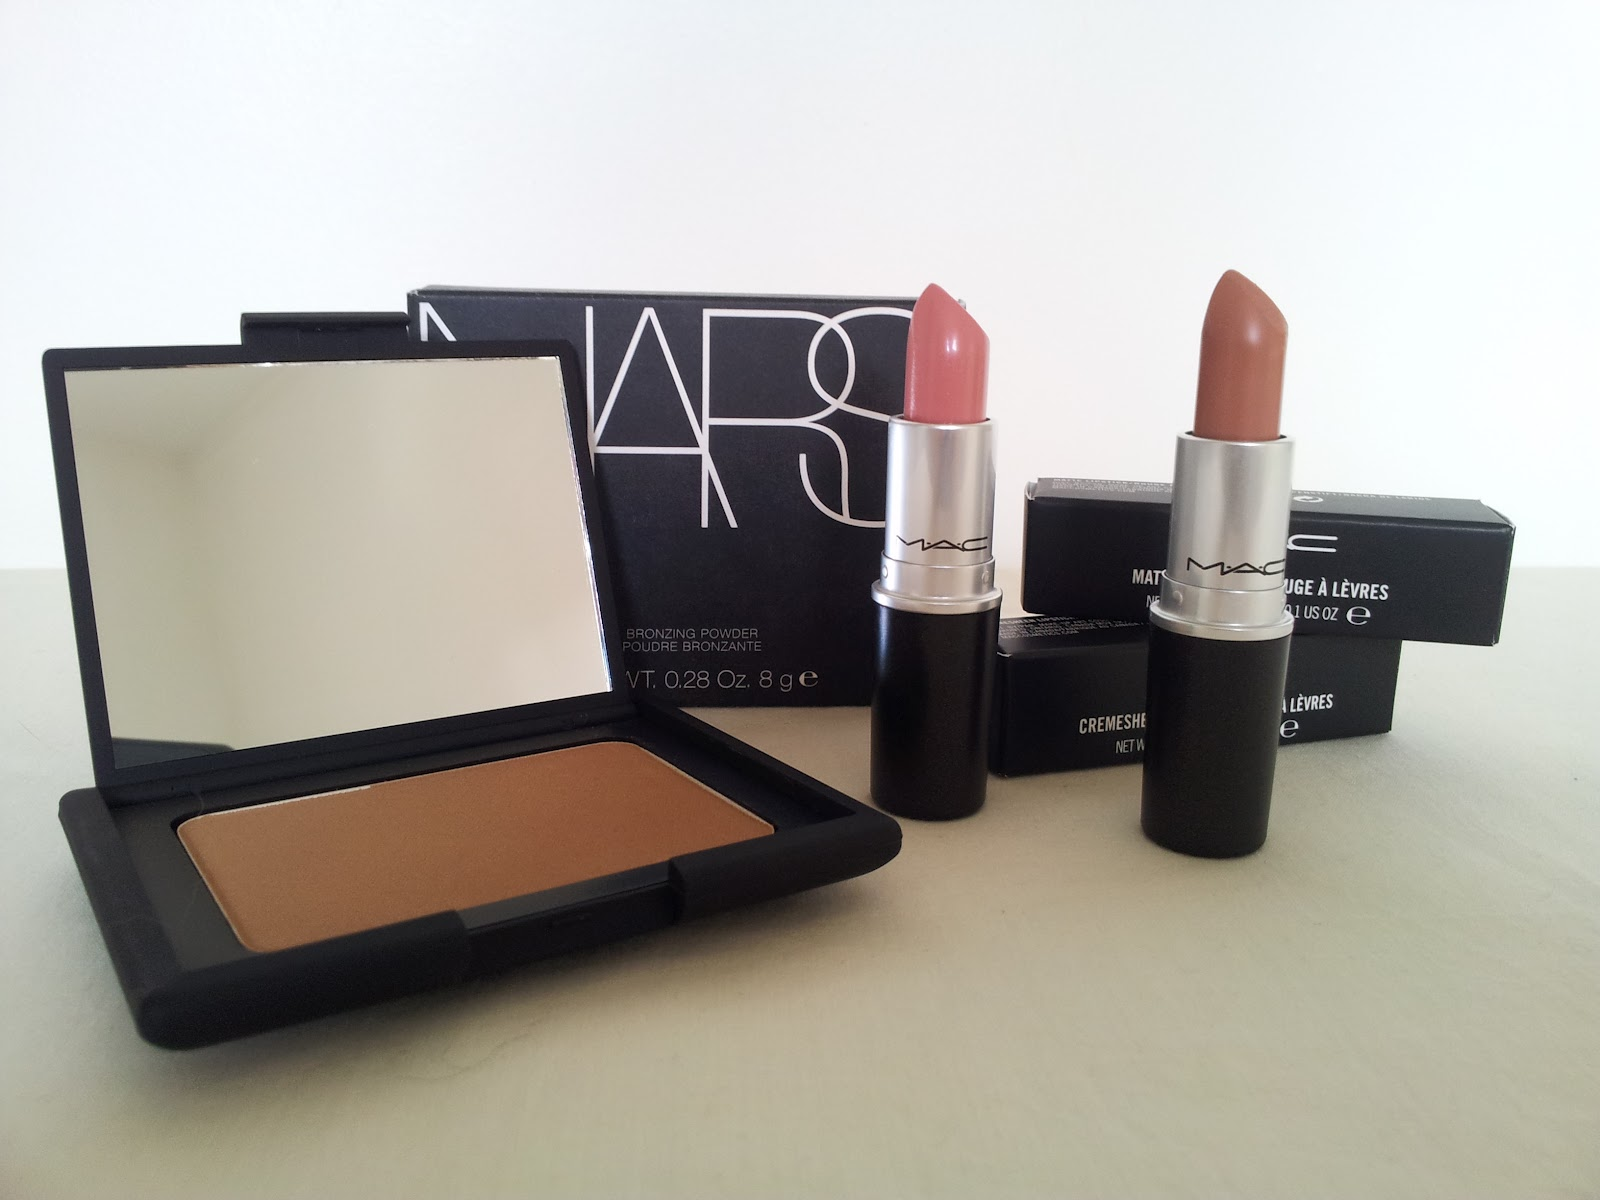 Nars Bronzer in Laguna, MAC Lipstick in Creme Cup, MAC Lipstick in Honeylove